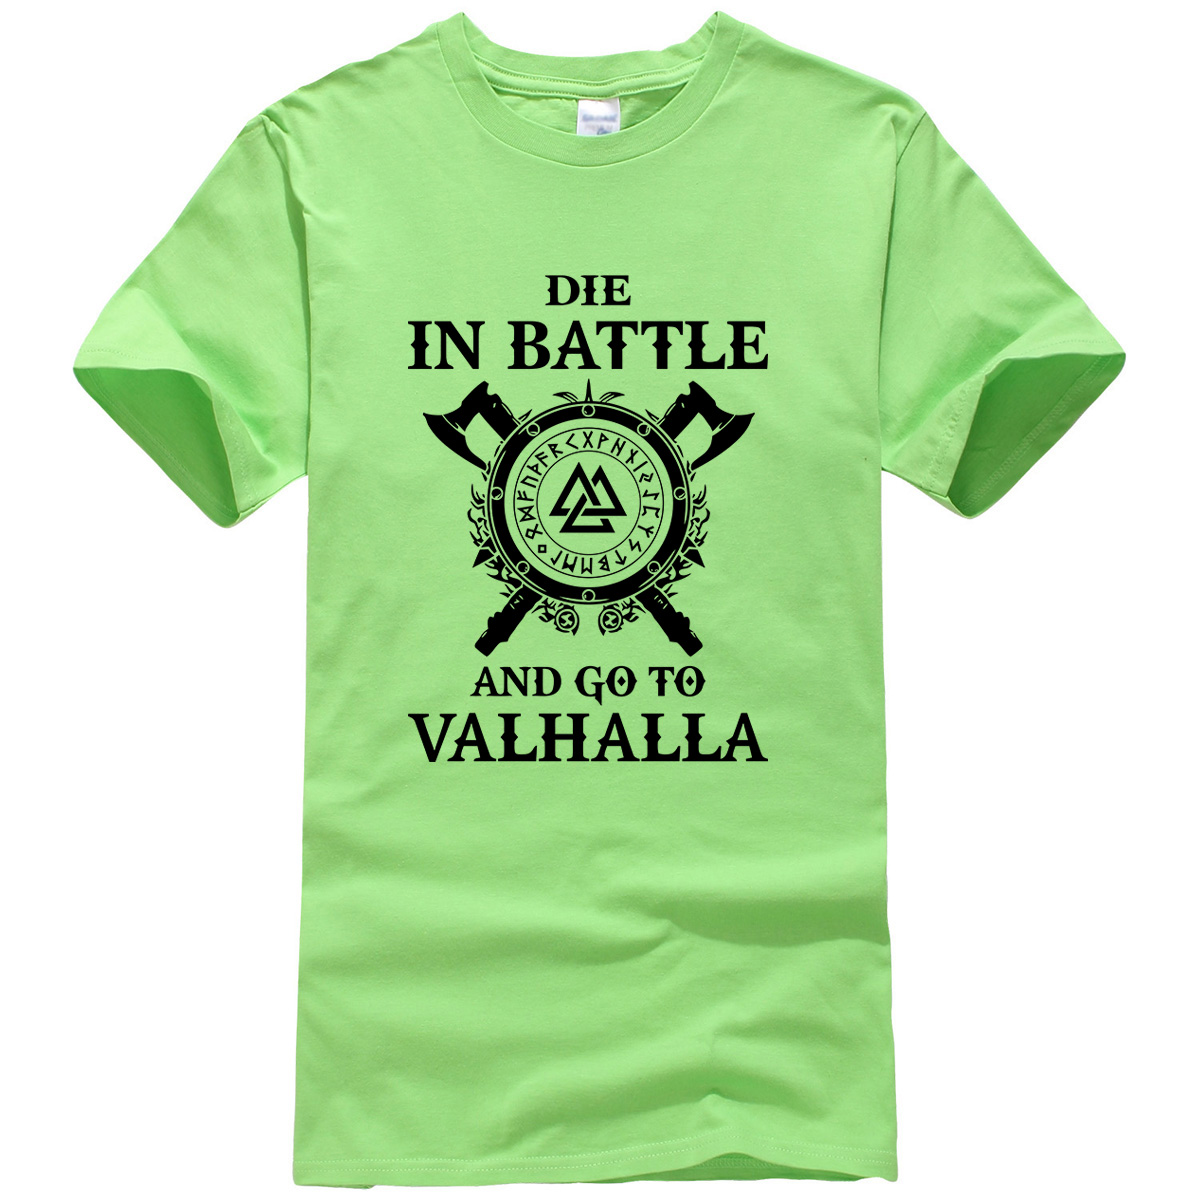 Summer 2019 New Fashion Vikings ODIN Top Men's T-shirts DIE IN BATTLE AND GO TO VALHALLA Funny T Shirt Men Harajuku Tops Tees